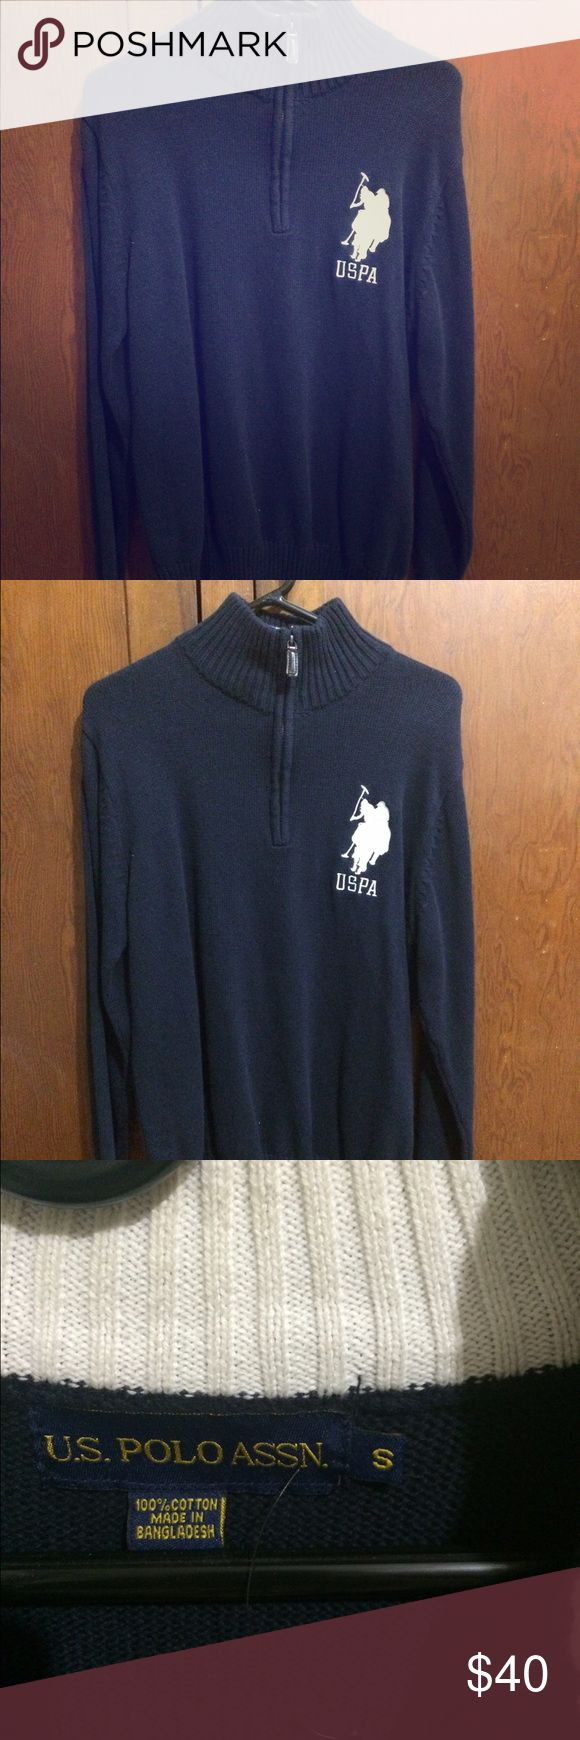 US Polo Association Pullover Sweater This is a like new US Polo Association one quarter zip pullover sweater still has the plastic attachment for the tag only worn a handful of times. US Polo Association Sweaters Zip Up